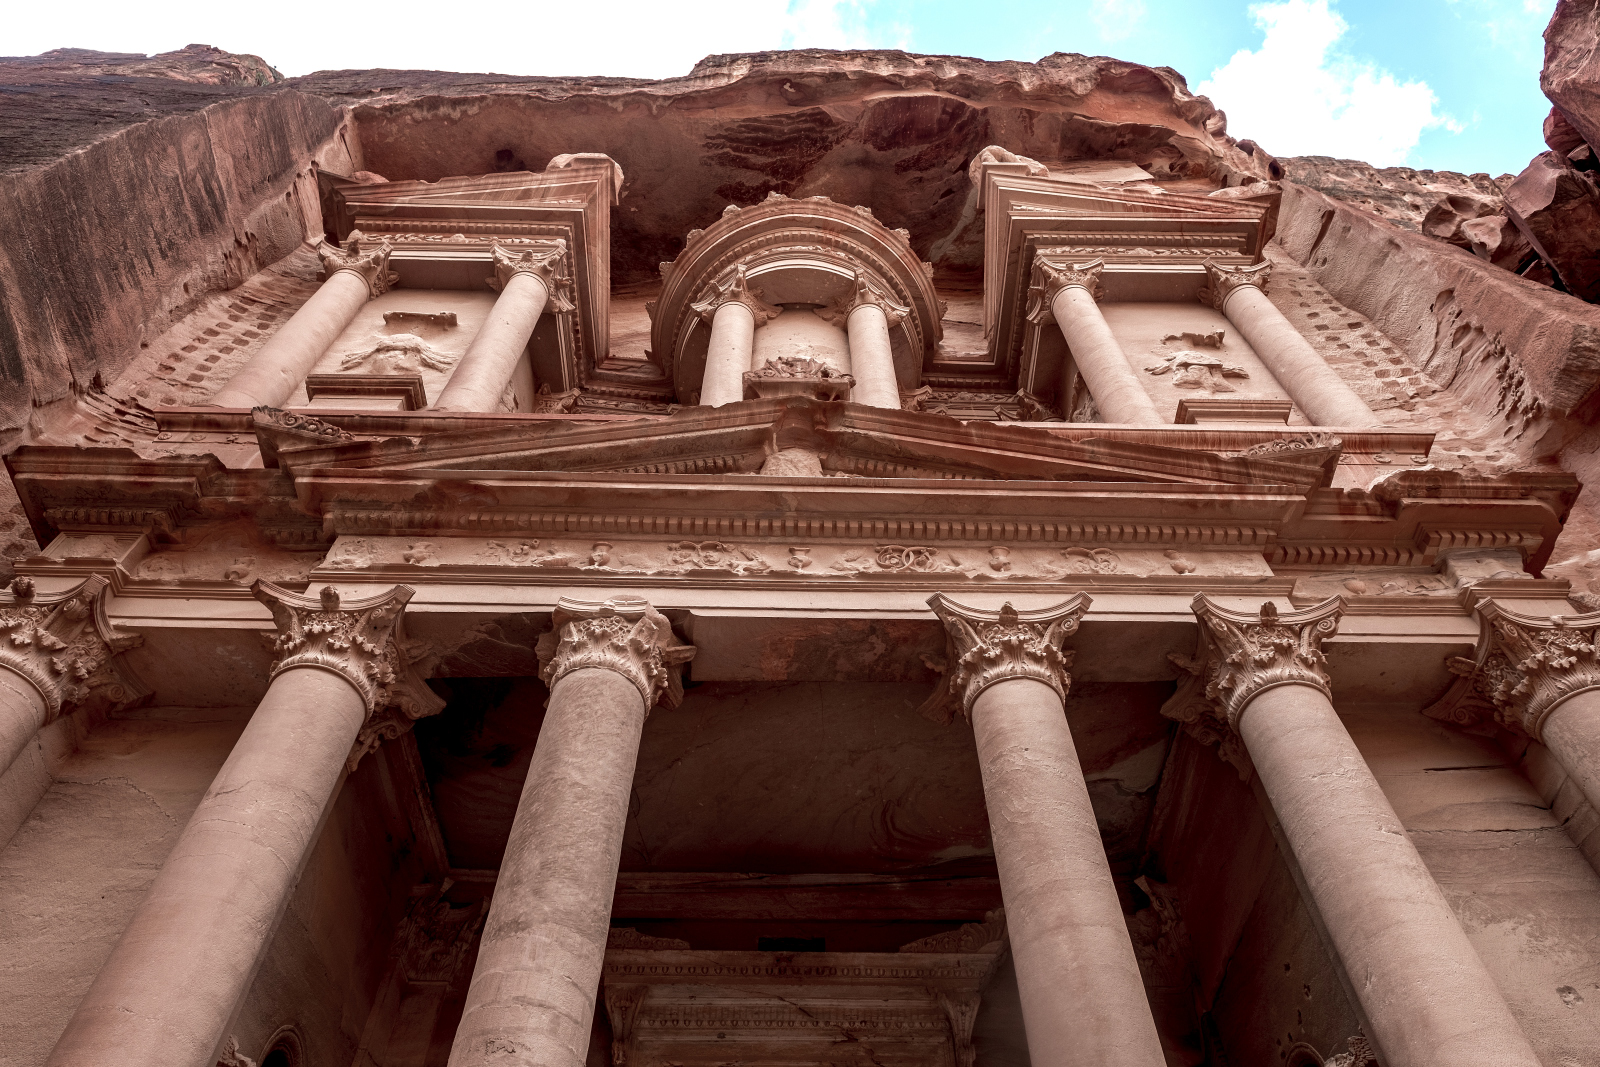 Petra - trading capital of the ancient nabateansOne of the new seven wonders of the world